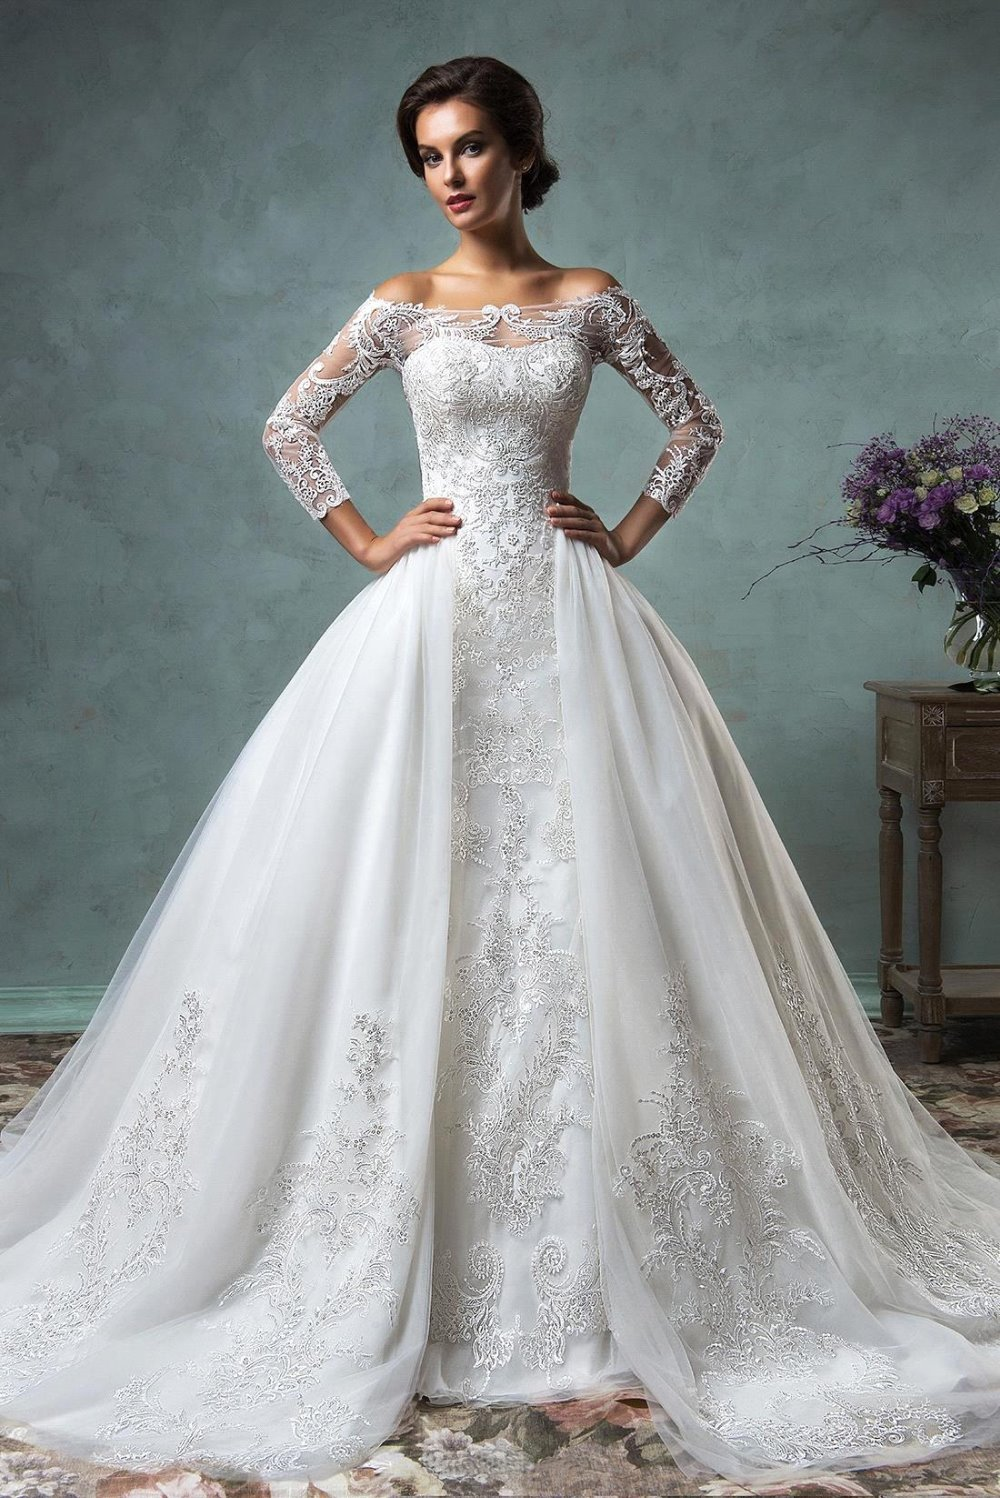 2016 New Fashion Long Sleeves Wedding Dresses With Detachable Train Lace Lique Off The Shoulder 3 In 1 Unique Bridal Gowns From